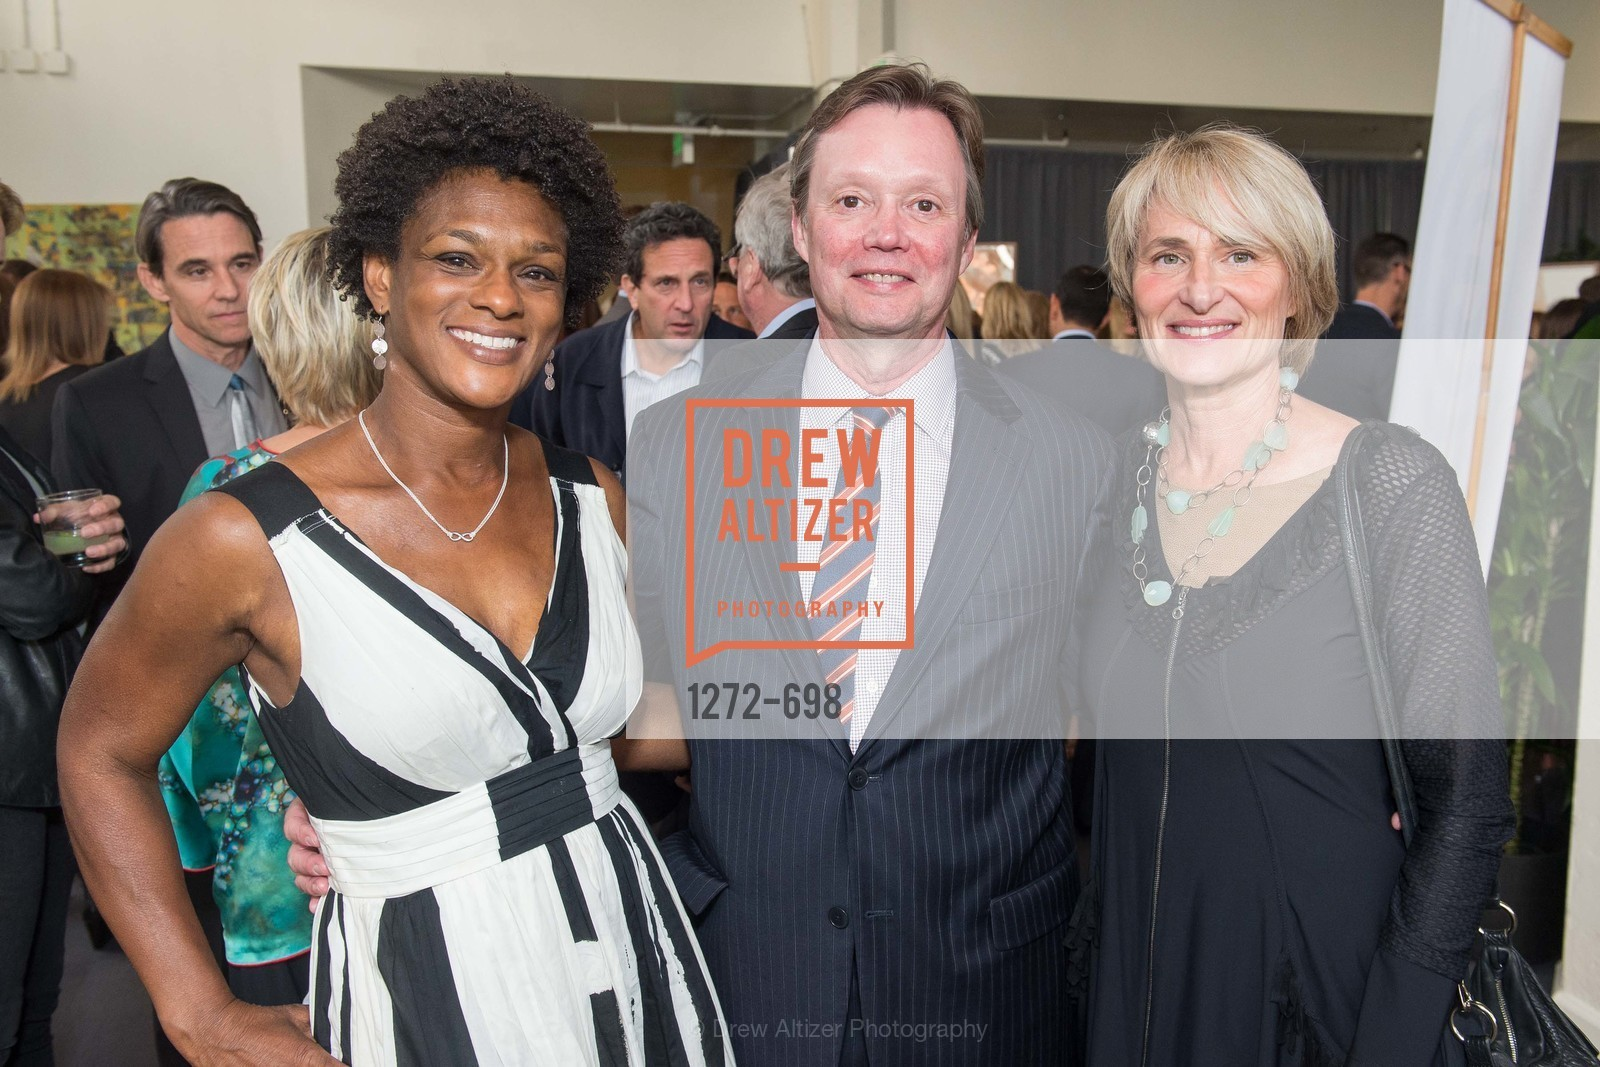 Nadine Decoteau, Craig Cox, EWG's 6th Annual Earth Dinner, US, May 6th, 2015,Drew Altizer, Drew Altizer Photography, full-service agency, private events, San Francisco photographer, photographer california